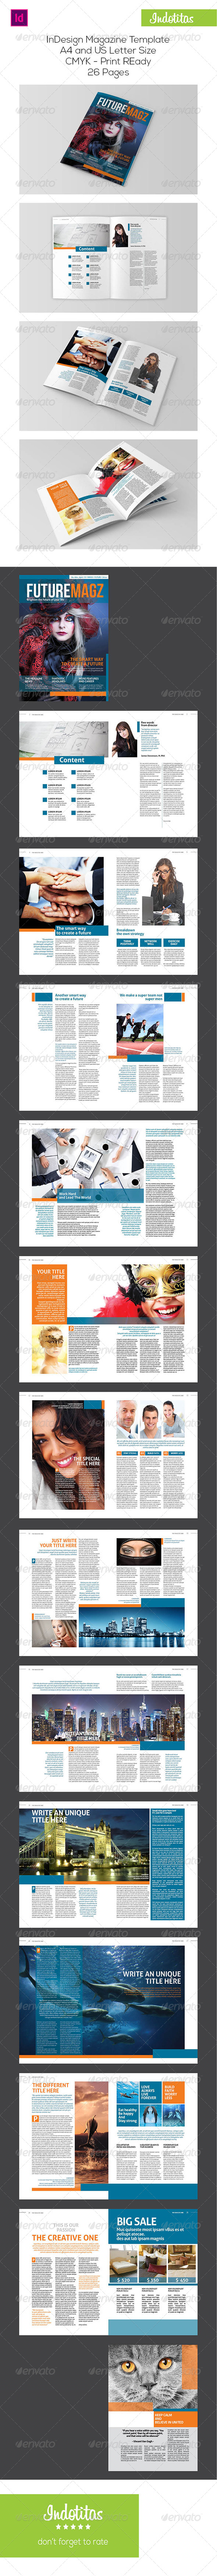 GraphicRiver InDesign Magazine Template 7396286